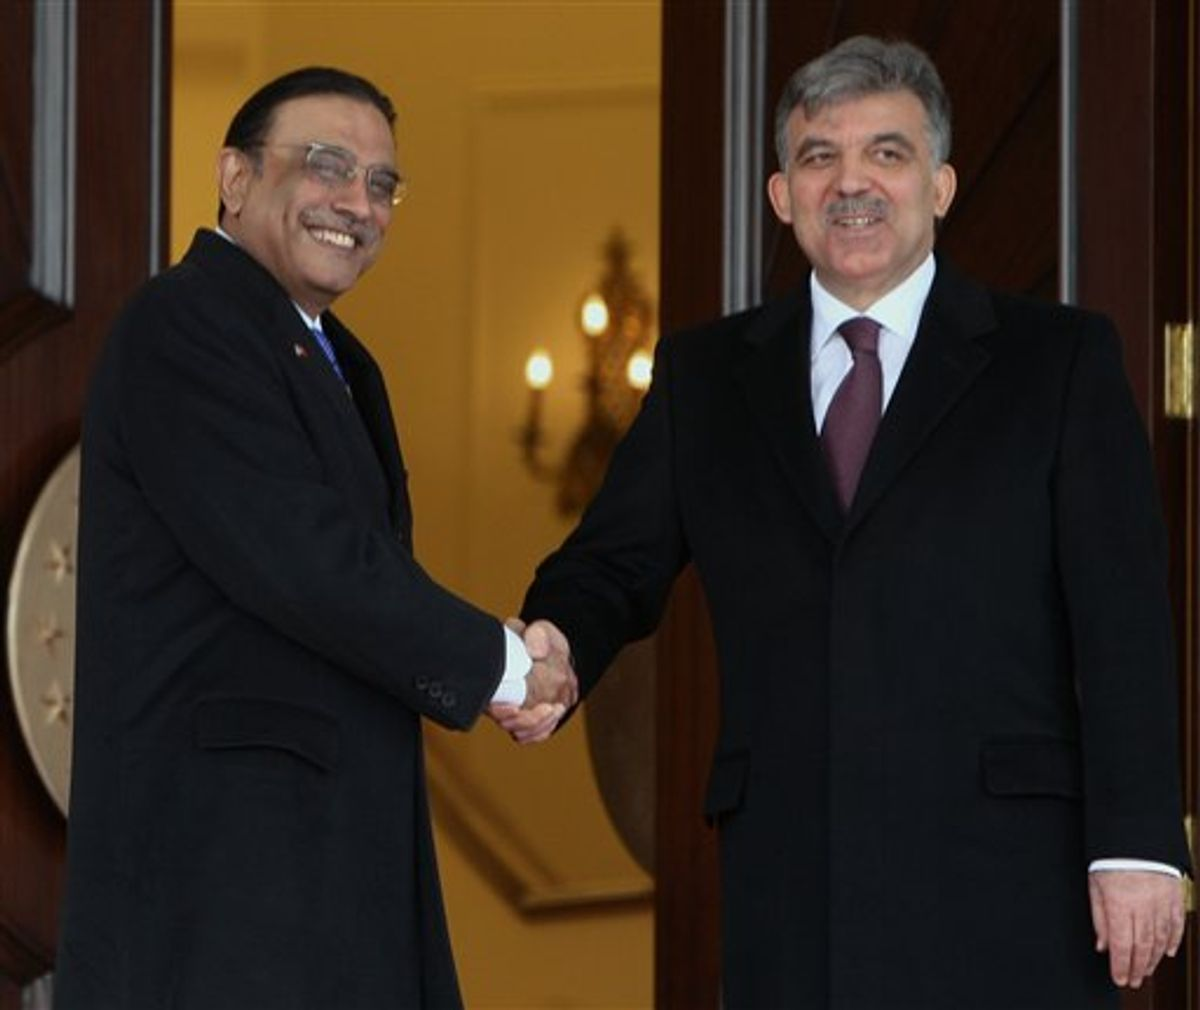 Pakistan's President Asif Ali Zardari, left, and his Turkish counterpart Abdullah Gul shake hands as they pose for cameras during a ceremony at the Cankaya presidential palace in Ankara, Turkey, Wednesday, April 13, 2011. Zardari is in Turkey for a four-day state visit.(AP Photo/Burhan Ozbilici) (AP)